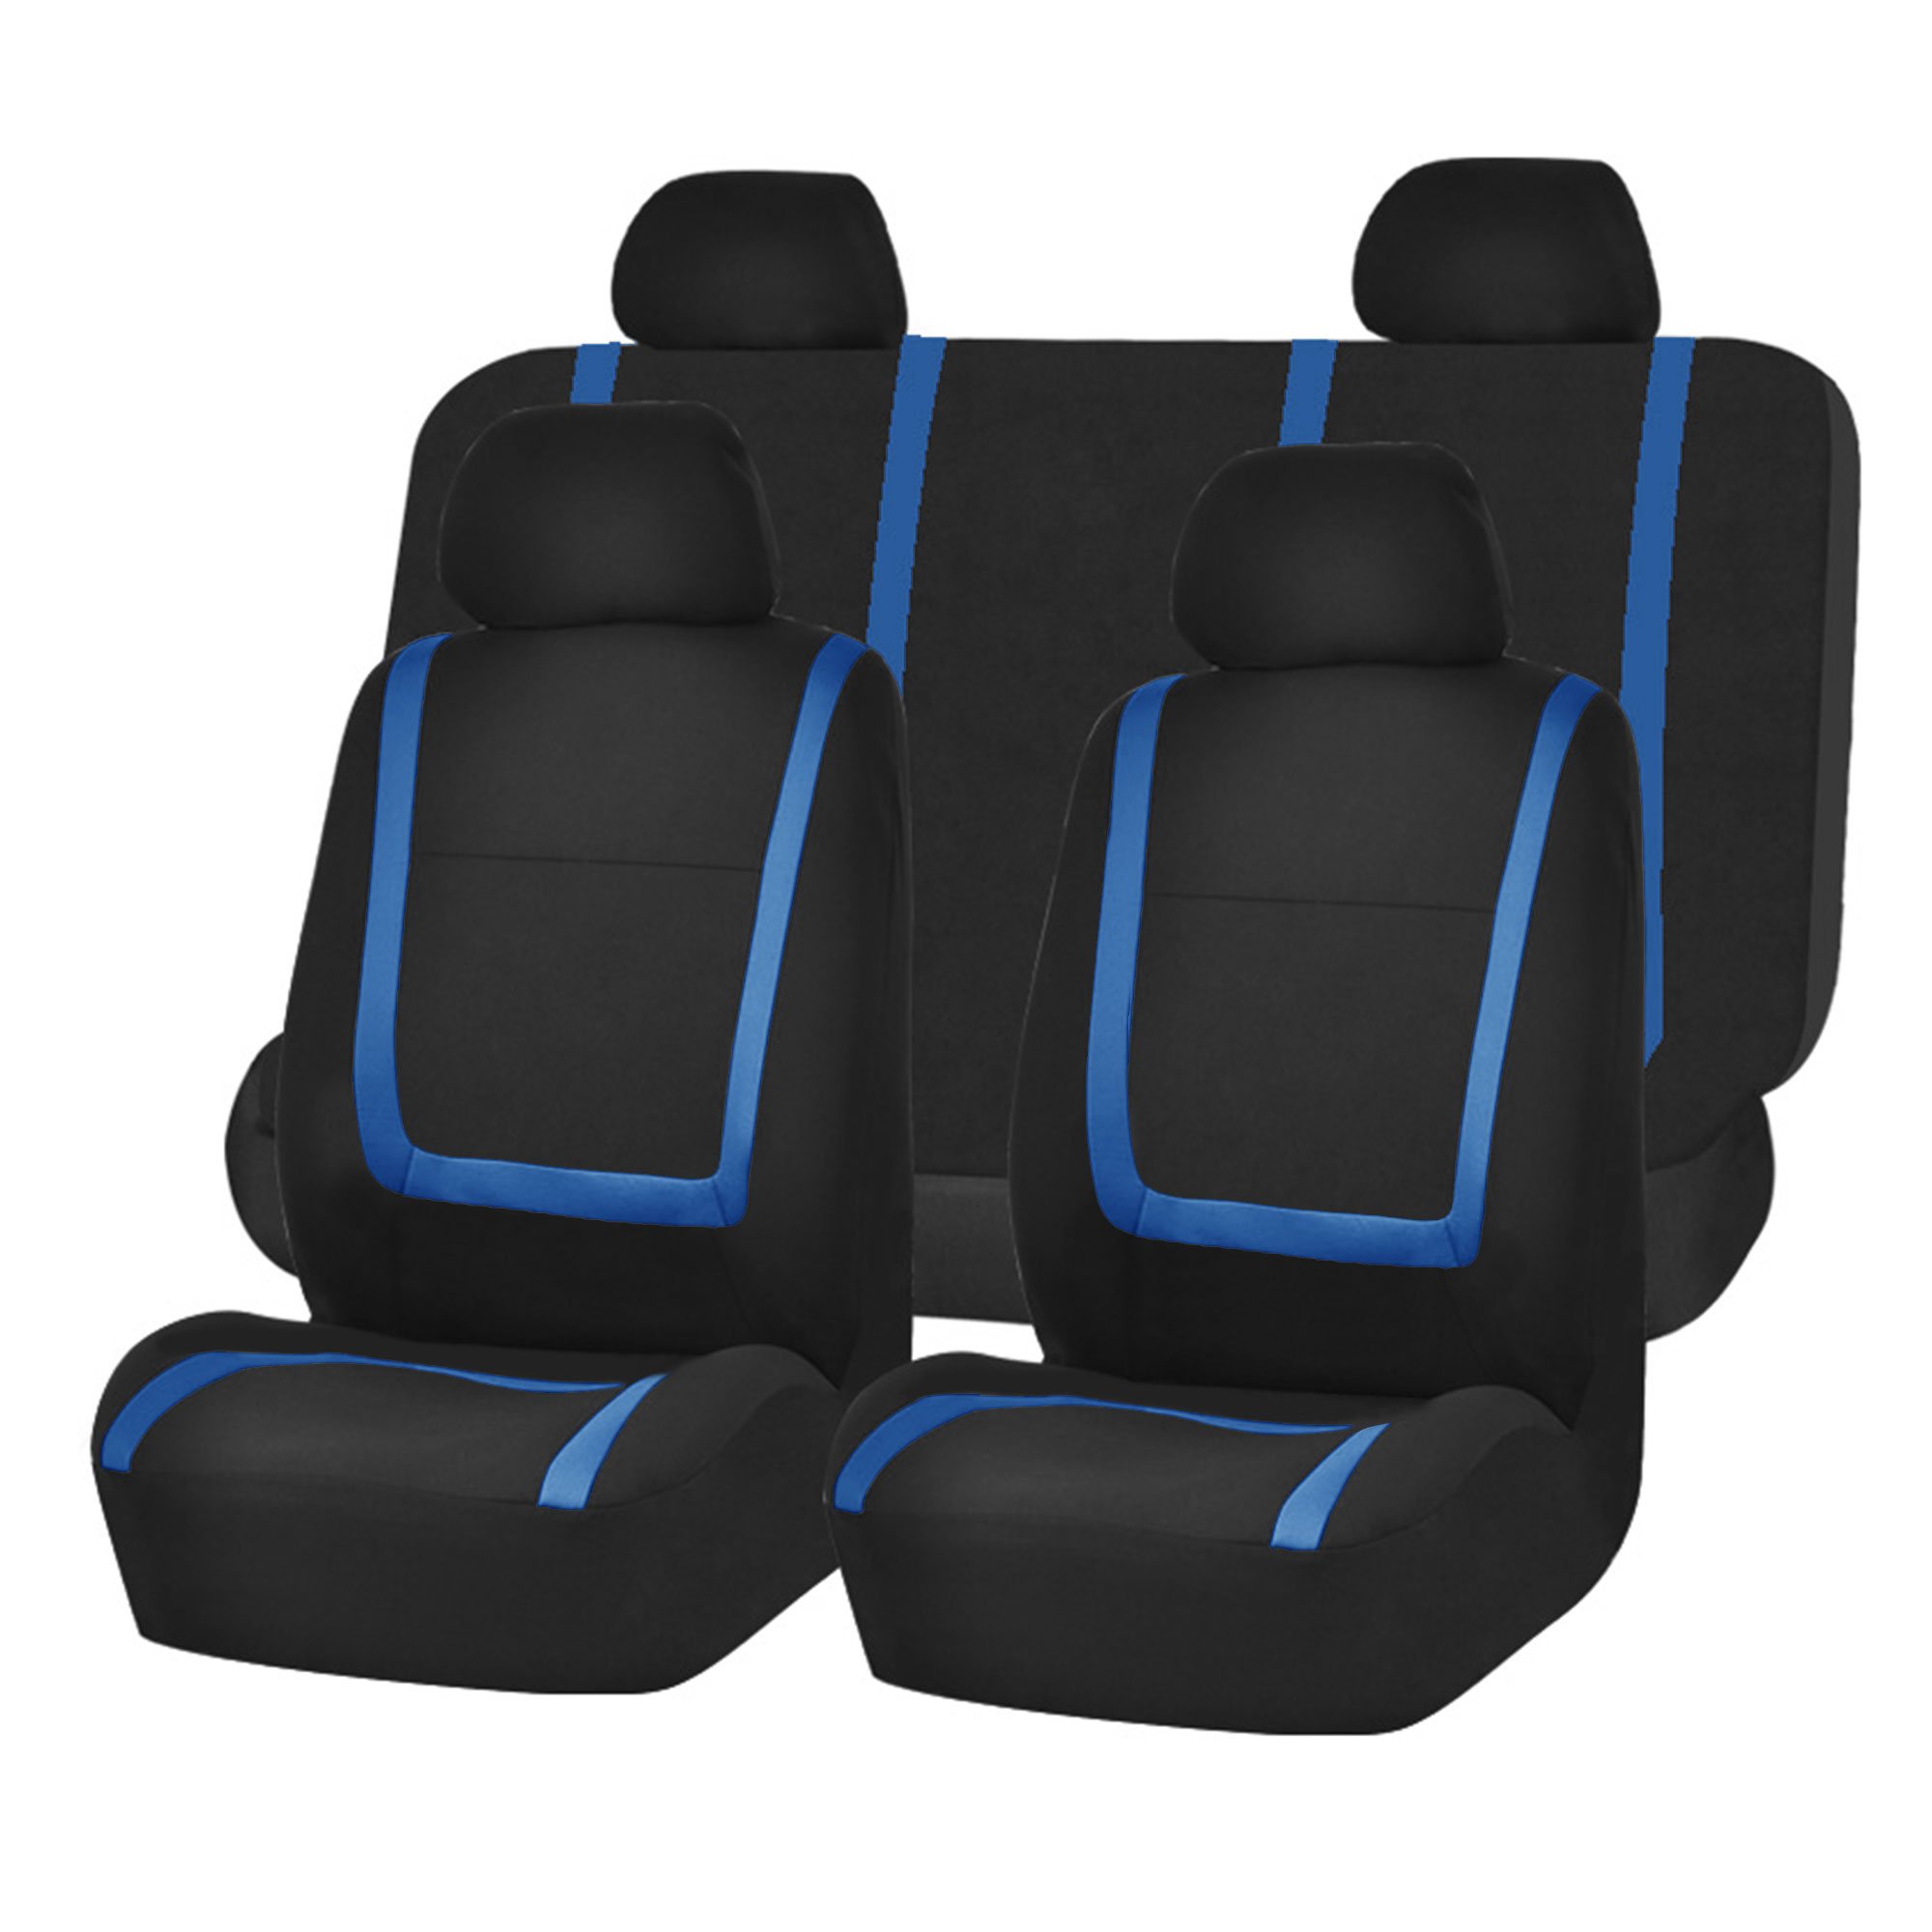 Auto Seat Covers for Car Sedan Truck Van Universal Seat Covers 12 Colors Blue